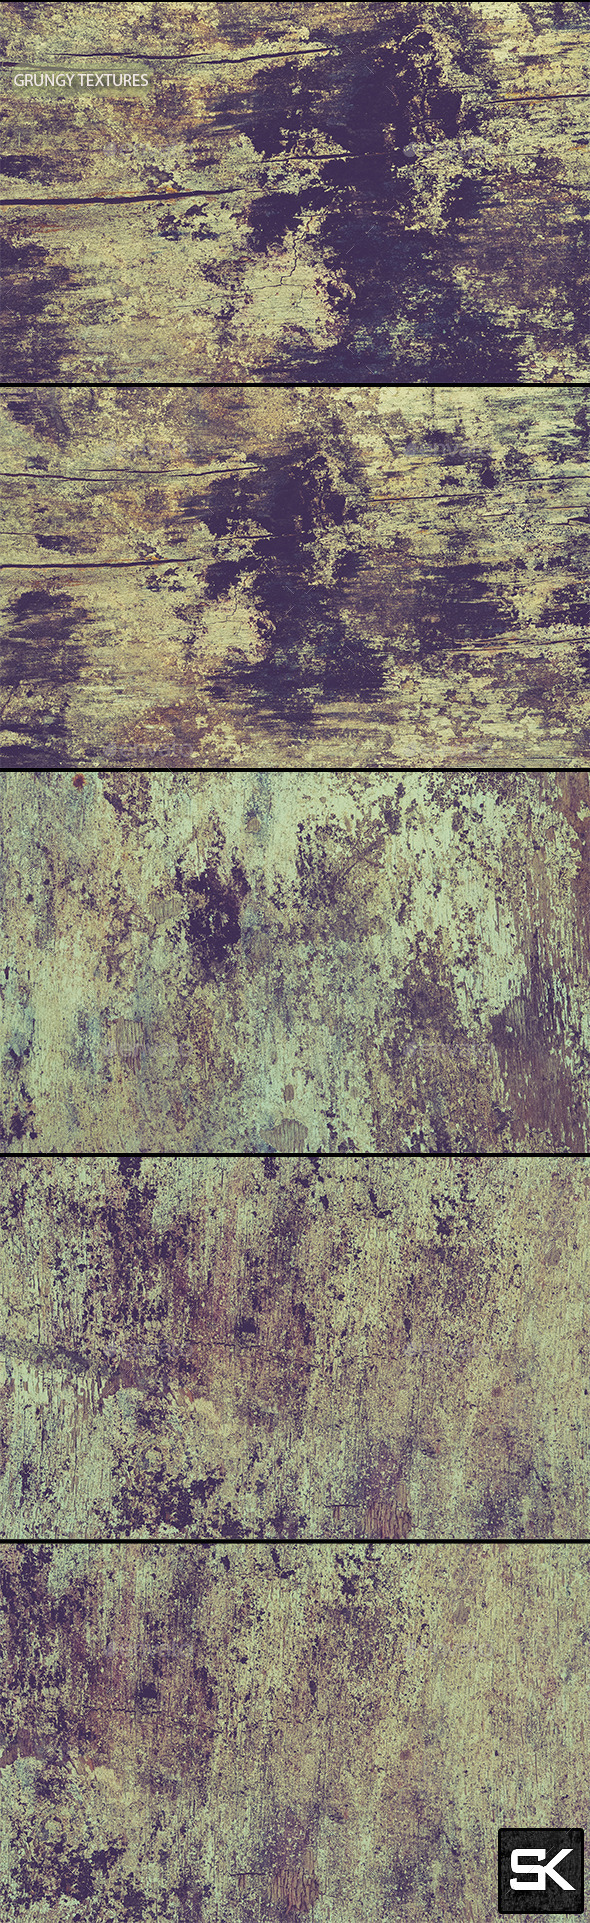 Grungy Textures - Industrial / Grunge Textures